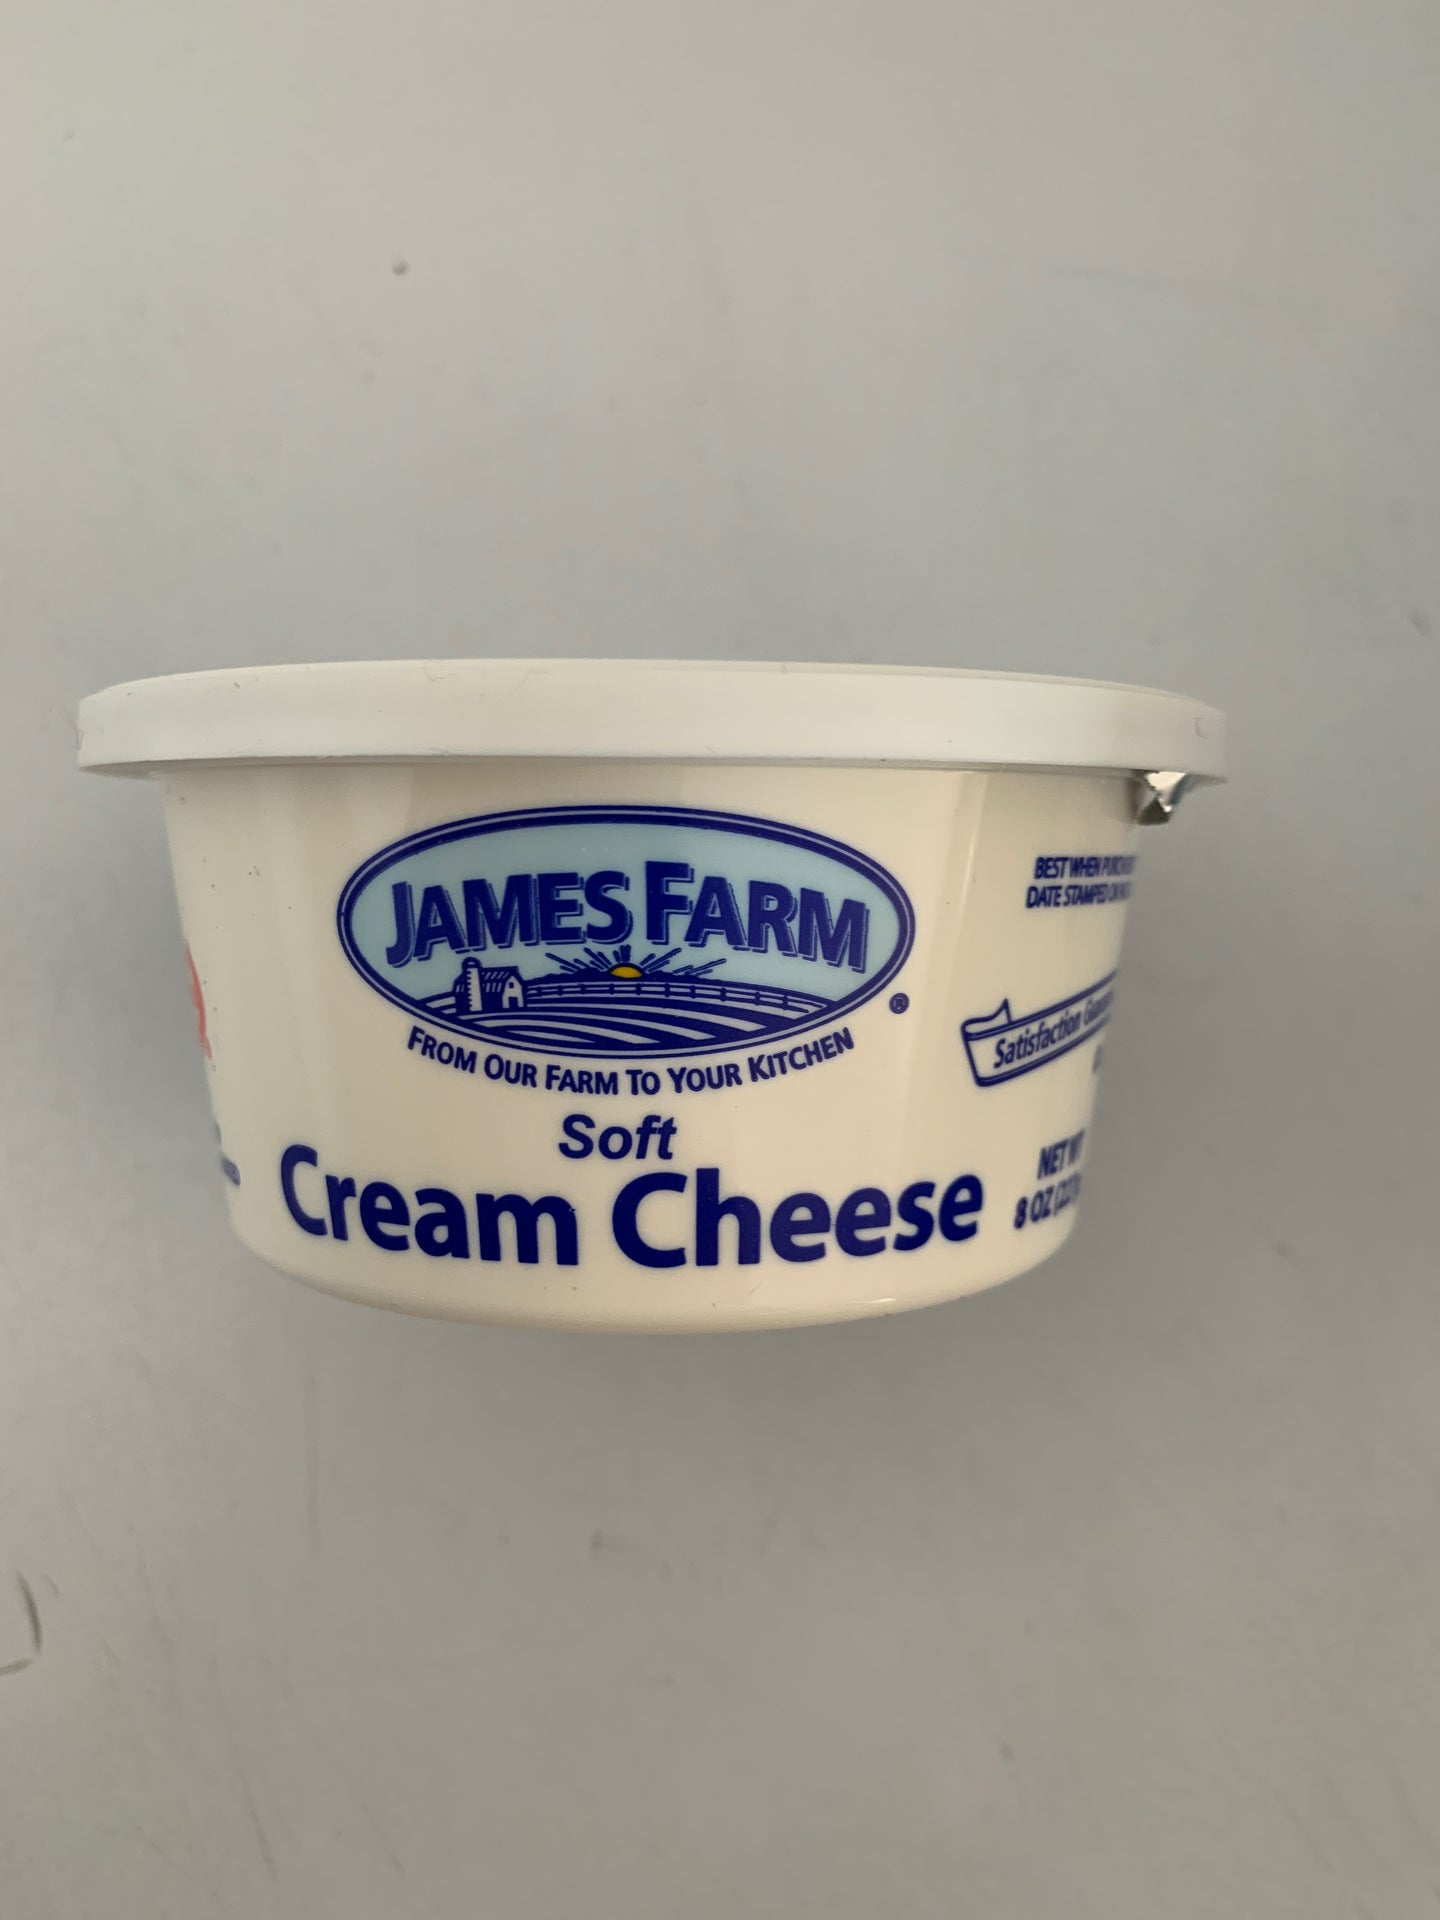 James Farm Cream Cheese